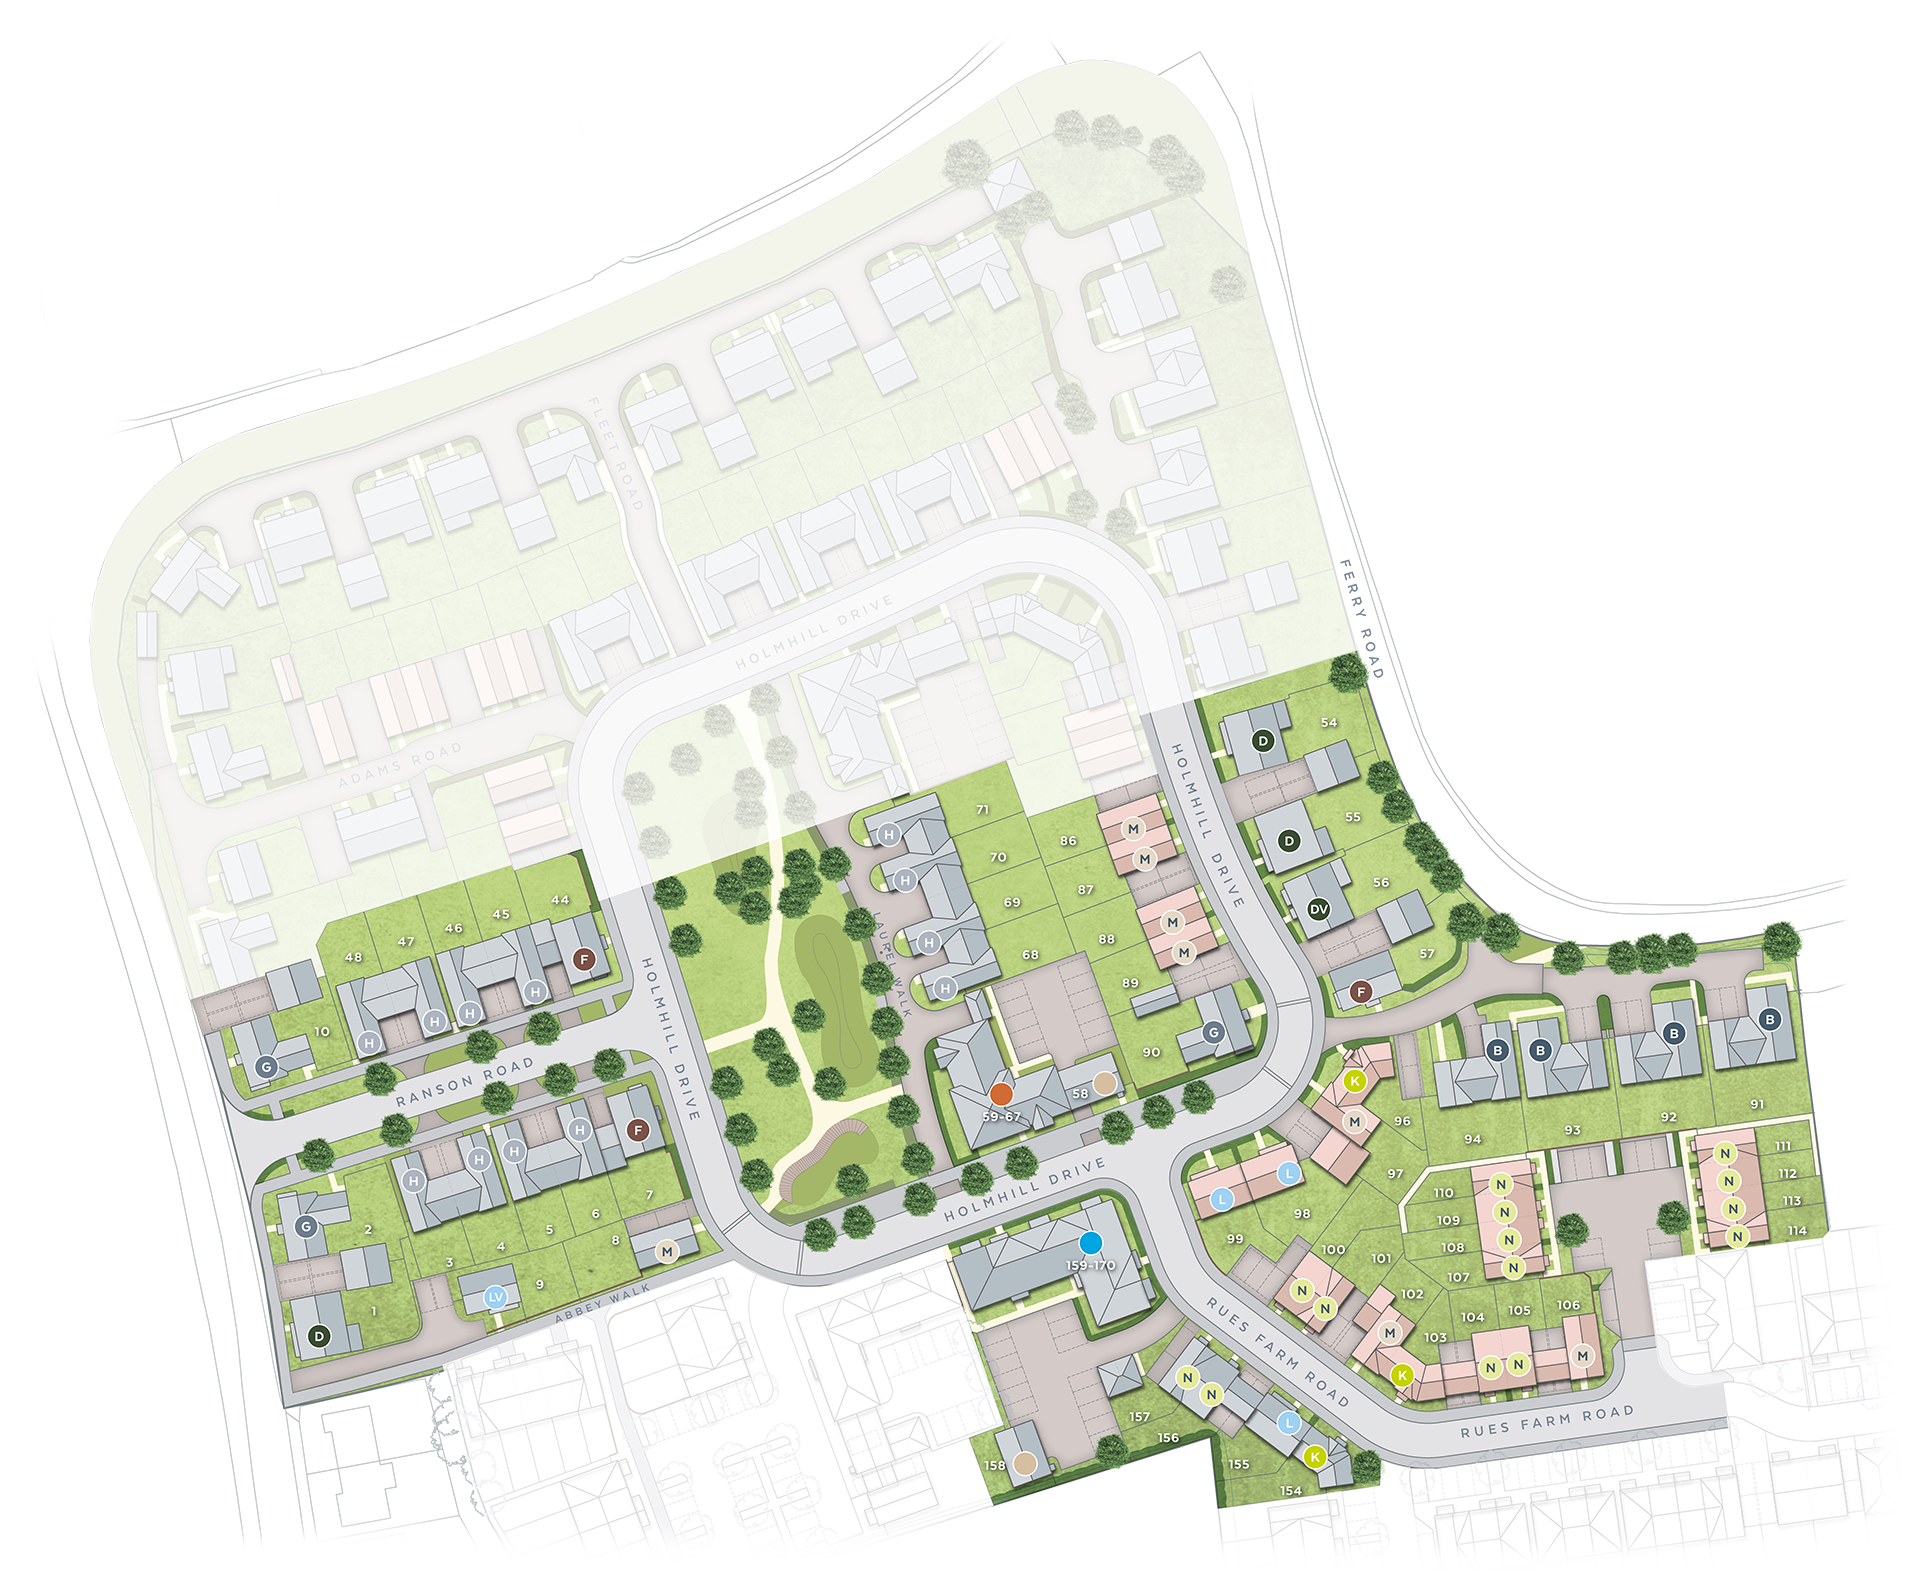 Siteplan Image - Full color